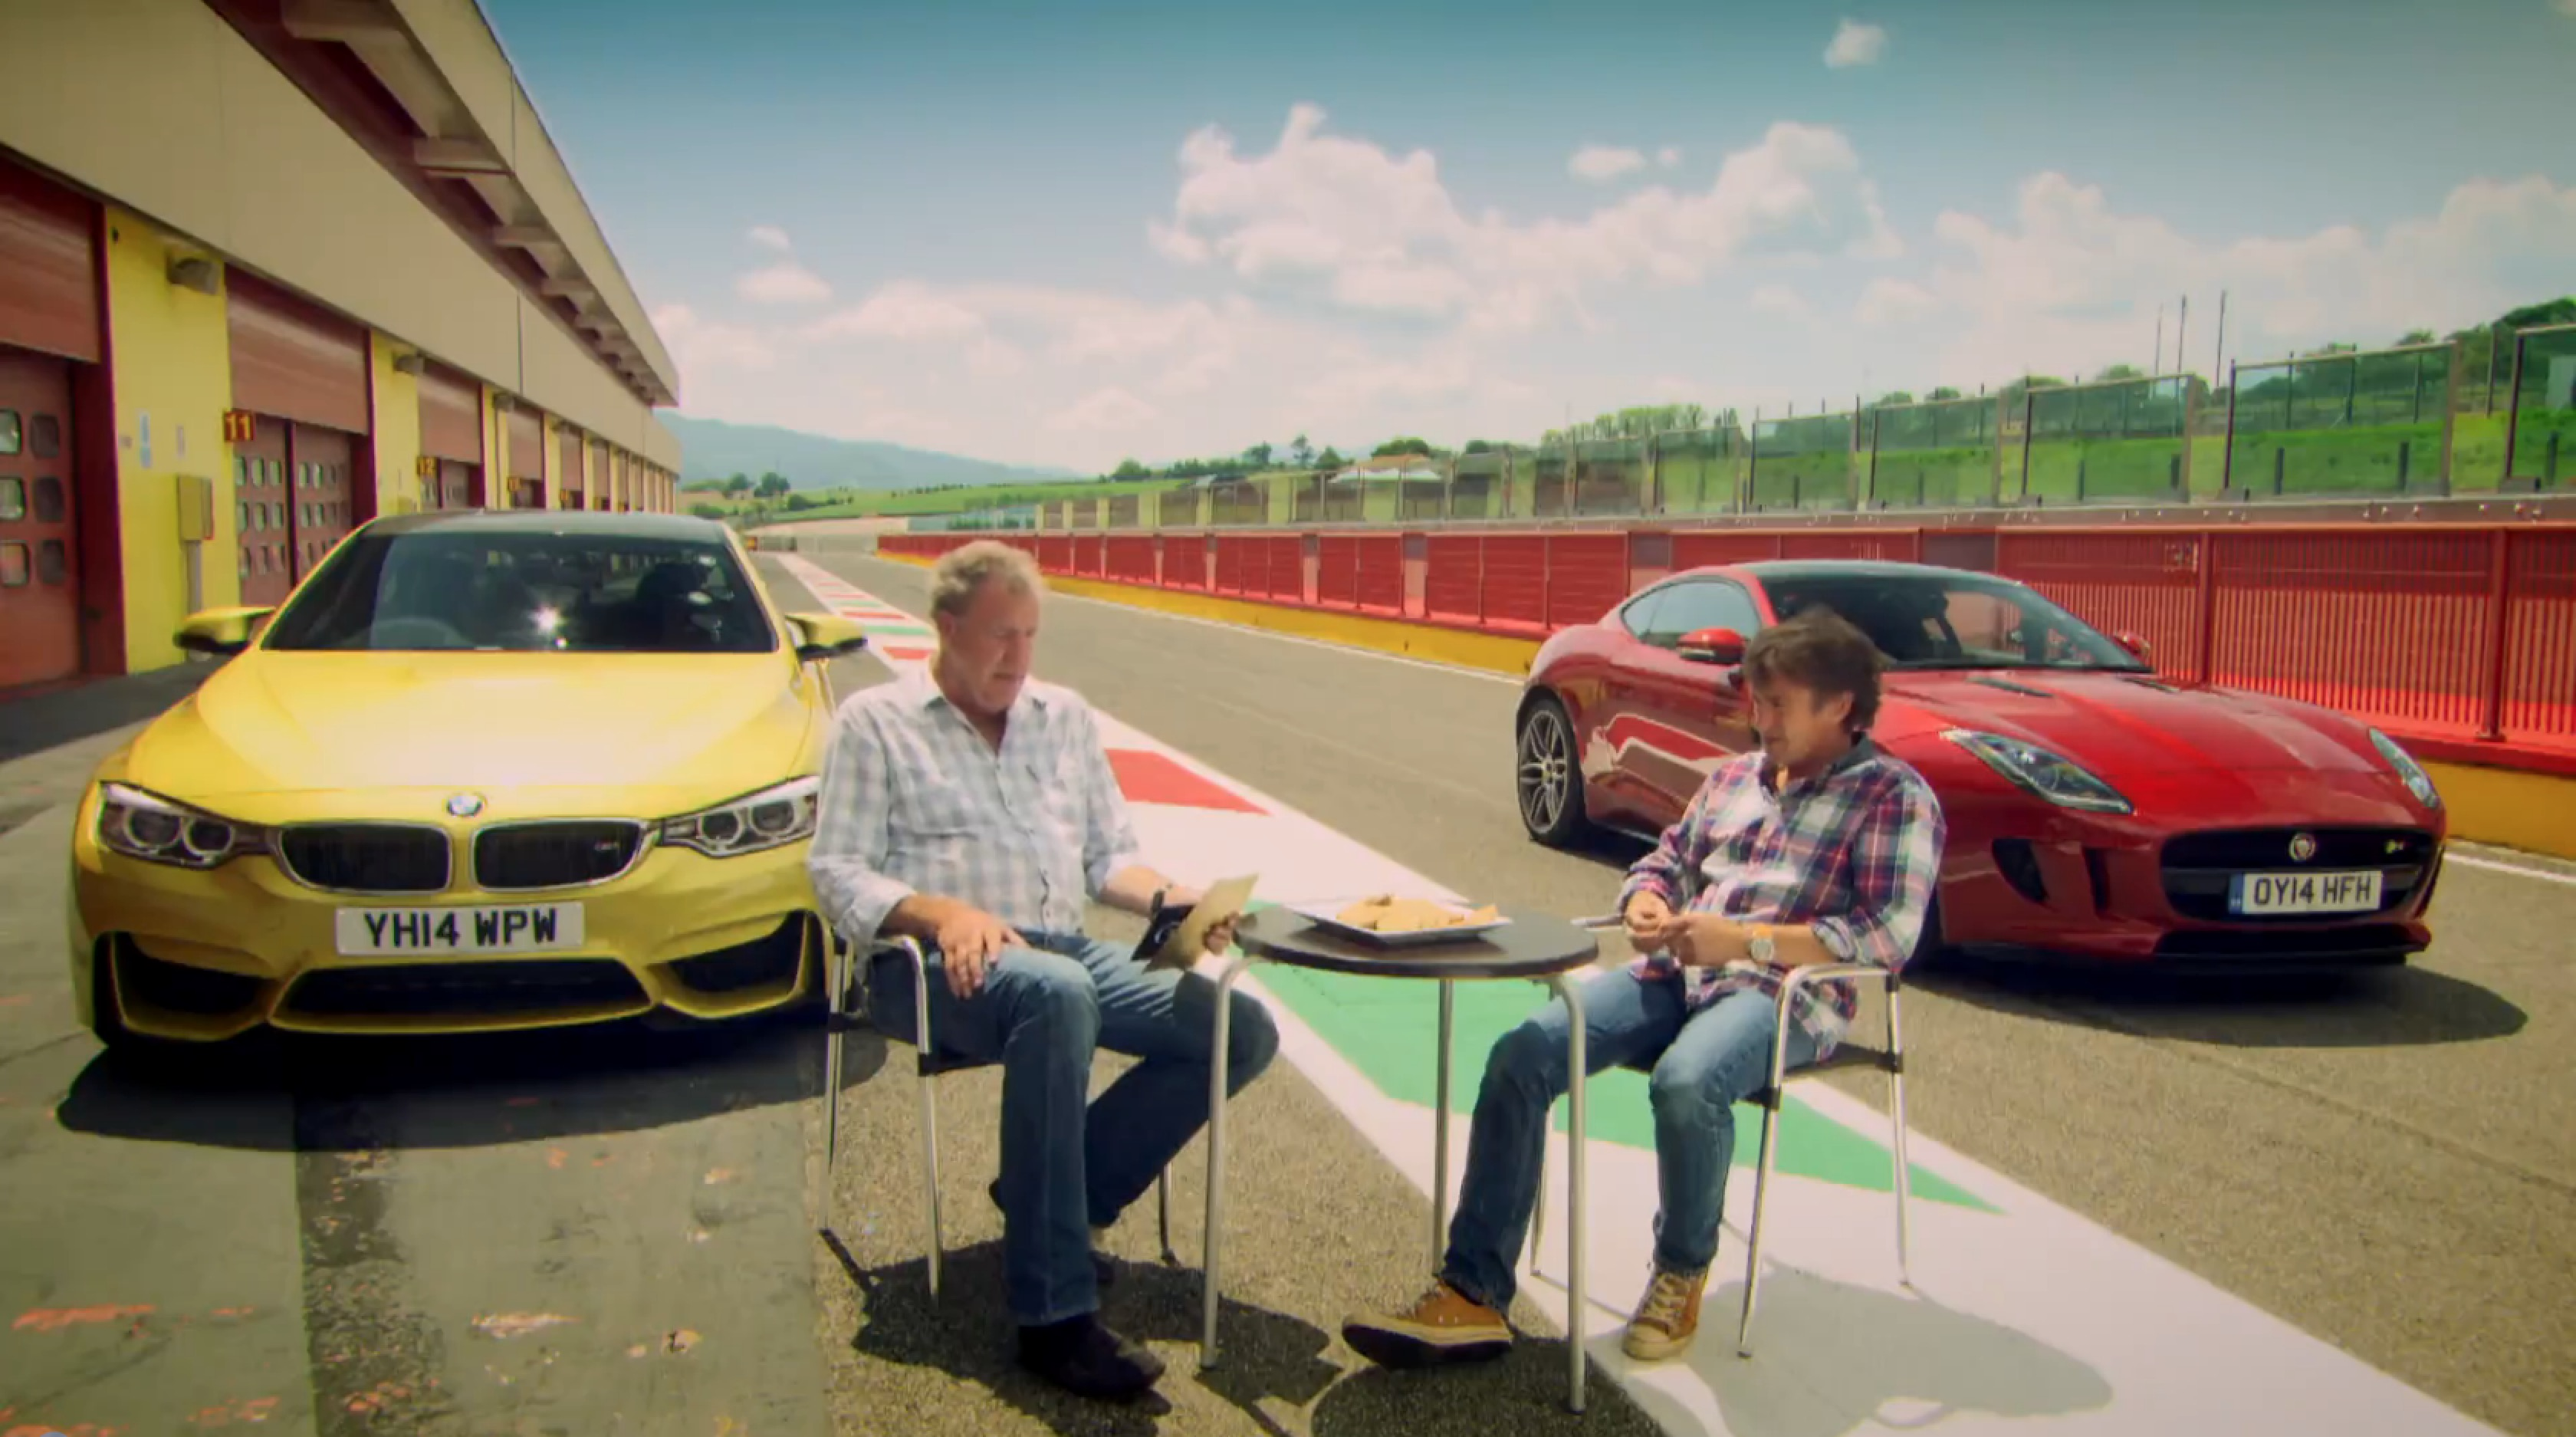 M4 Featured In Top Gear Perfect Roadtrip Special Vs Jag F Type R (Clarkson  Review)